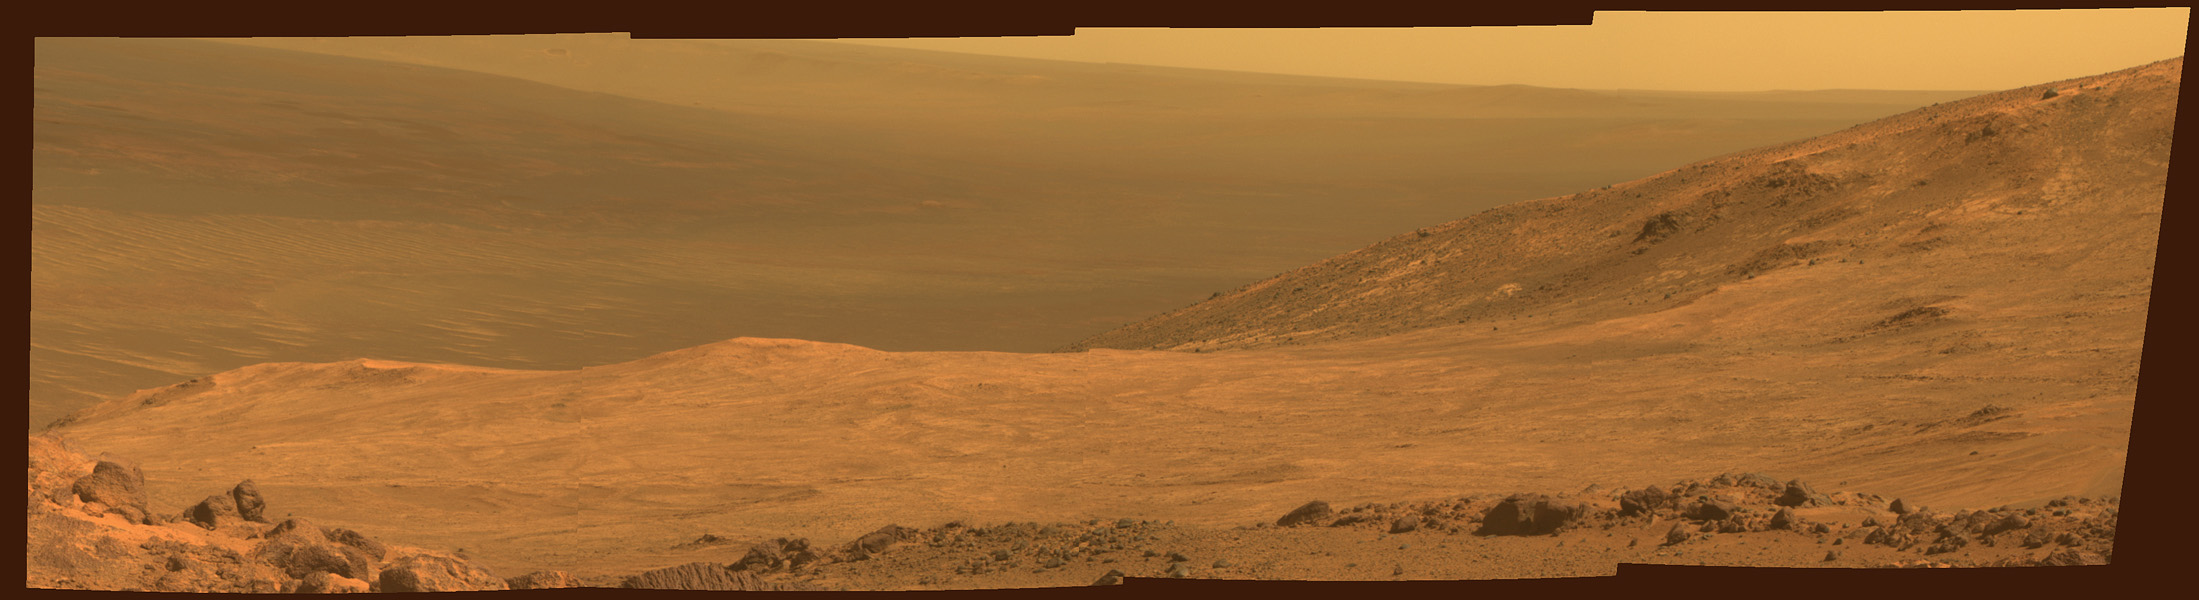 Marathon Valley, Seen by NASA's Opportunity Mars Rover